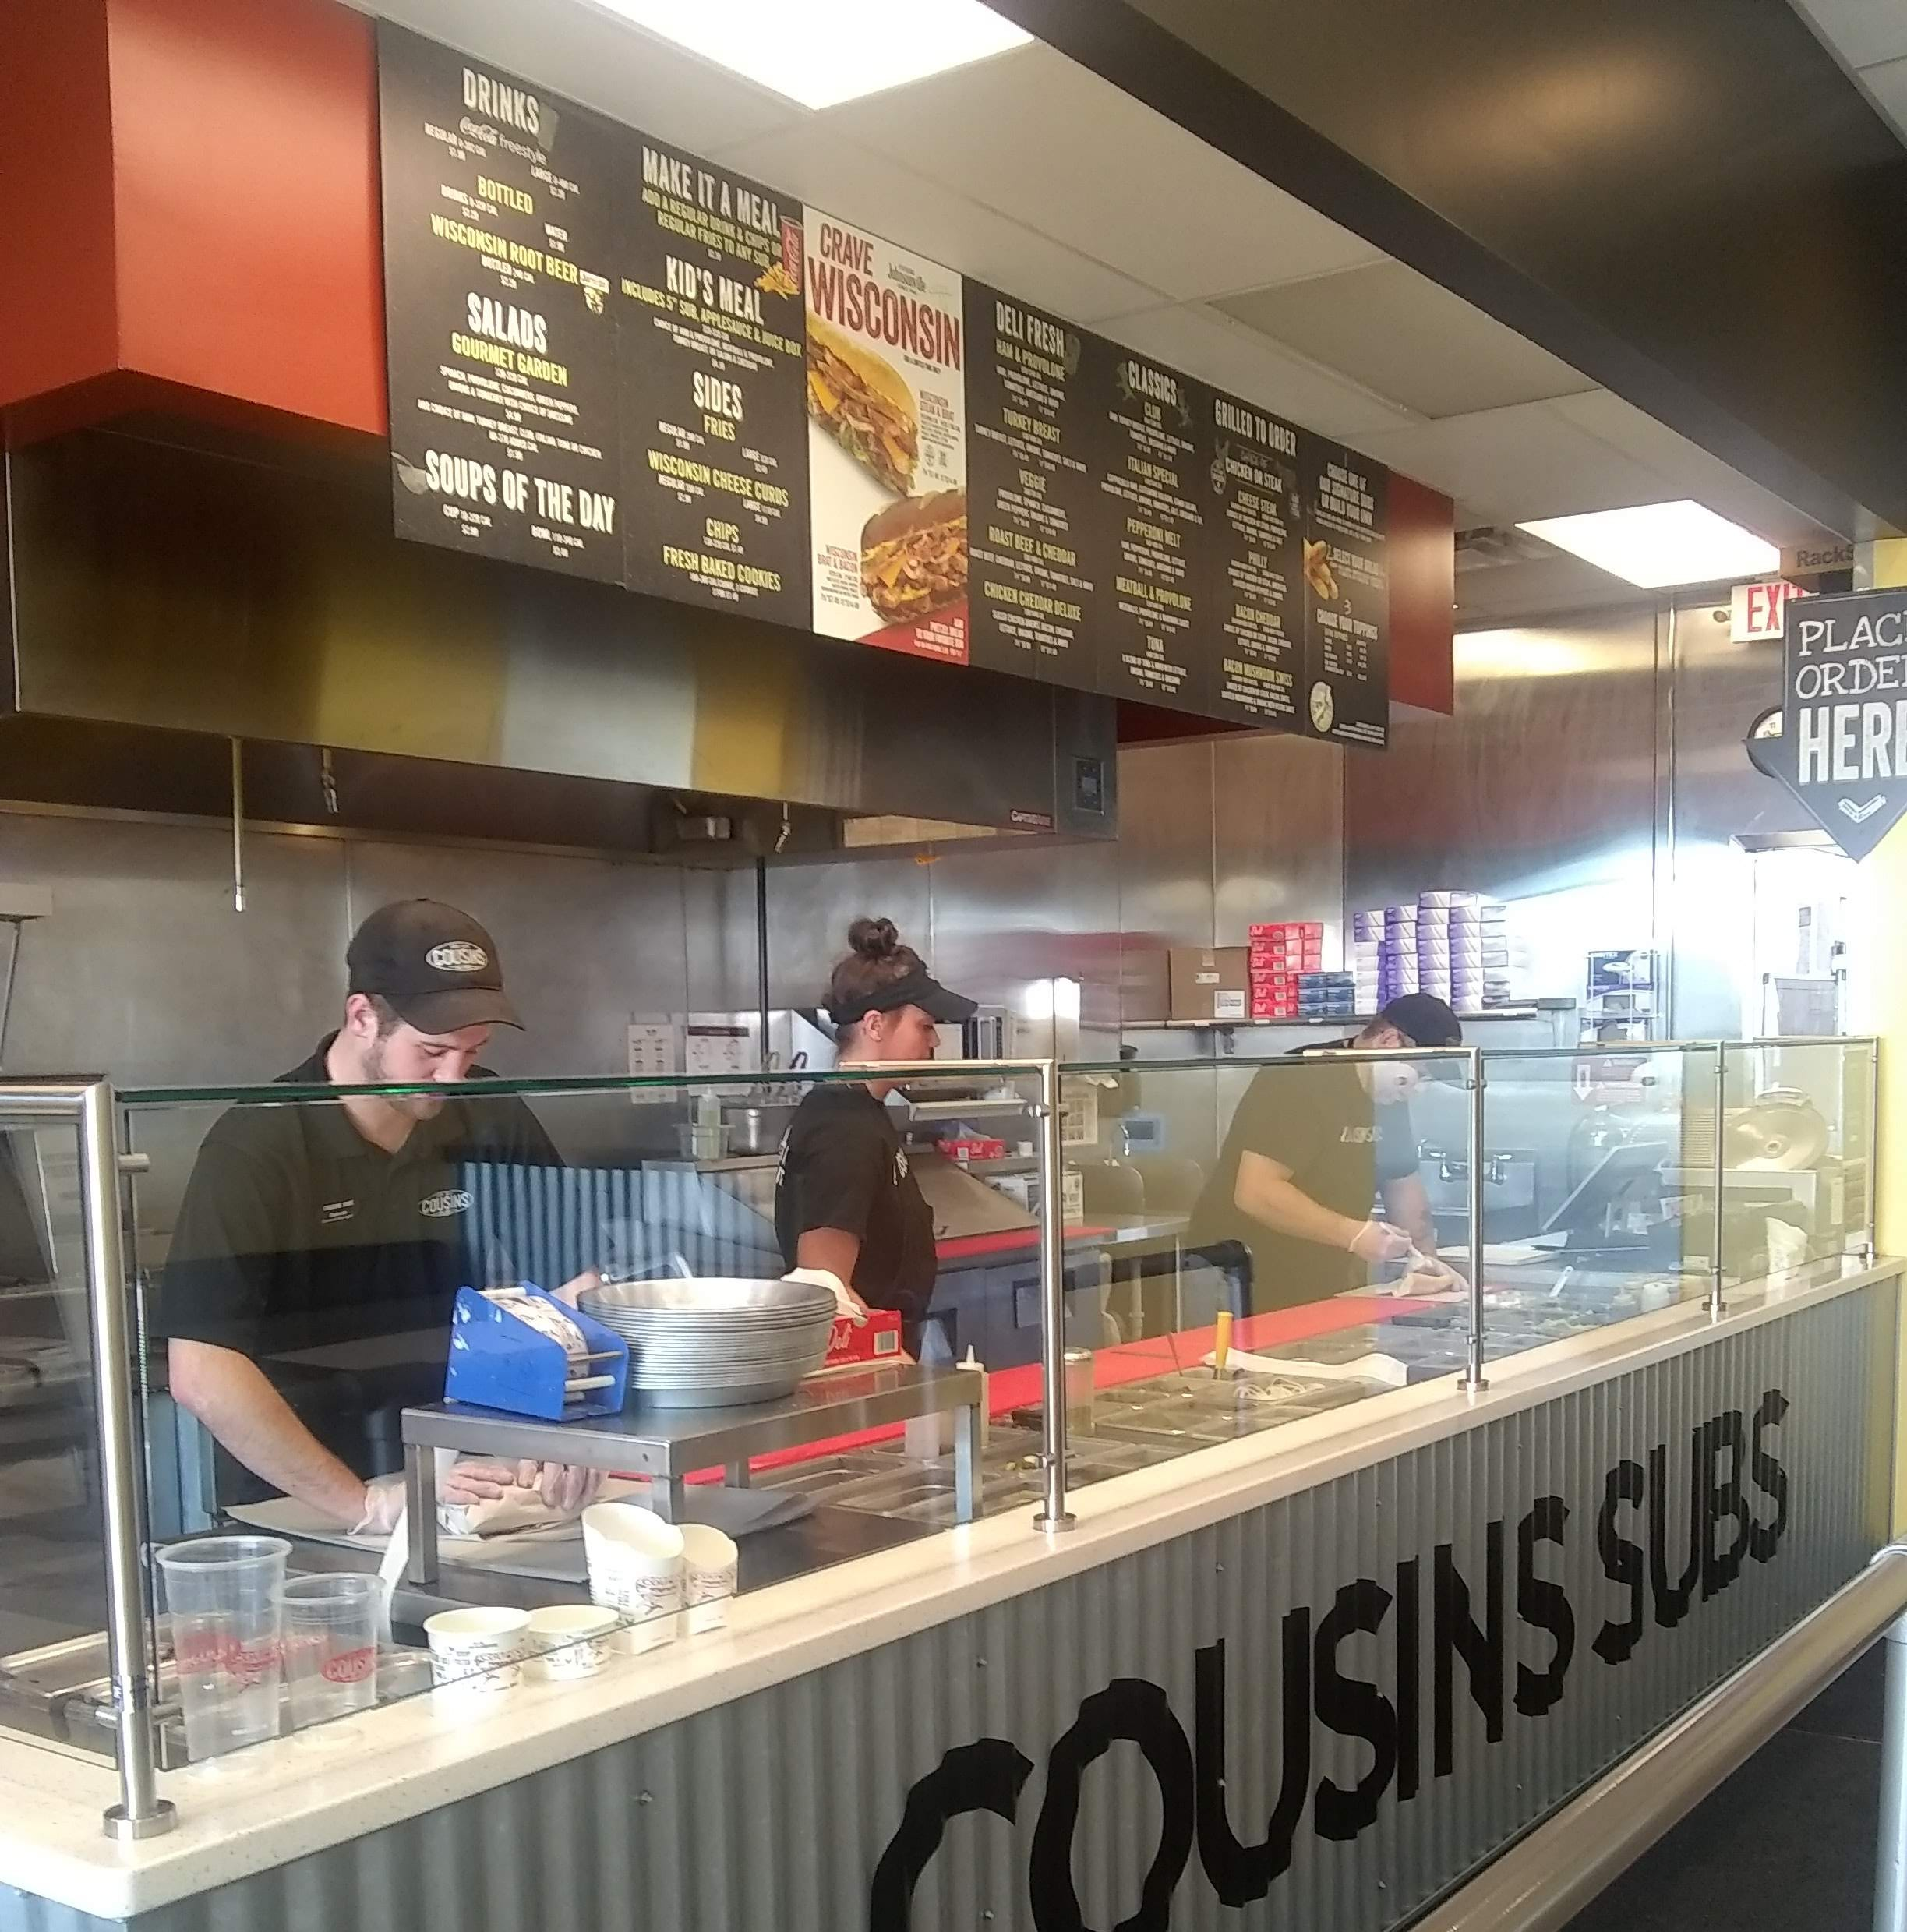 Manitowoc Cousins Subs franchisees expand with Appleton location | Chamber Notebook